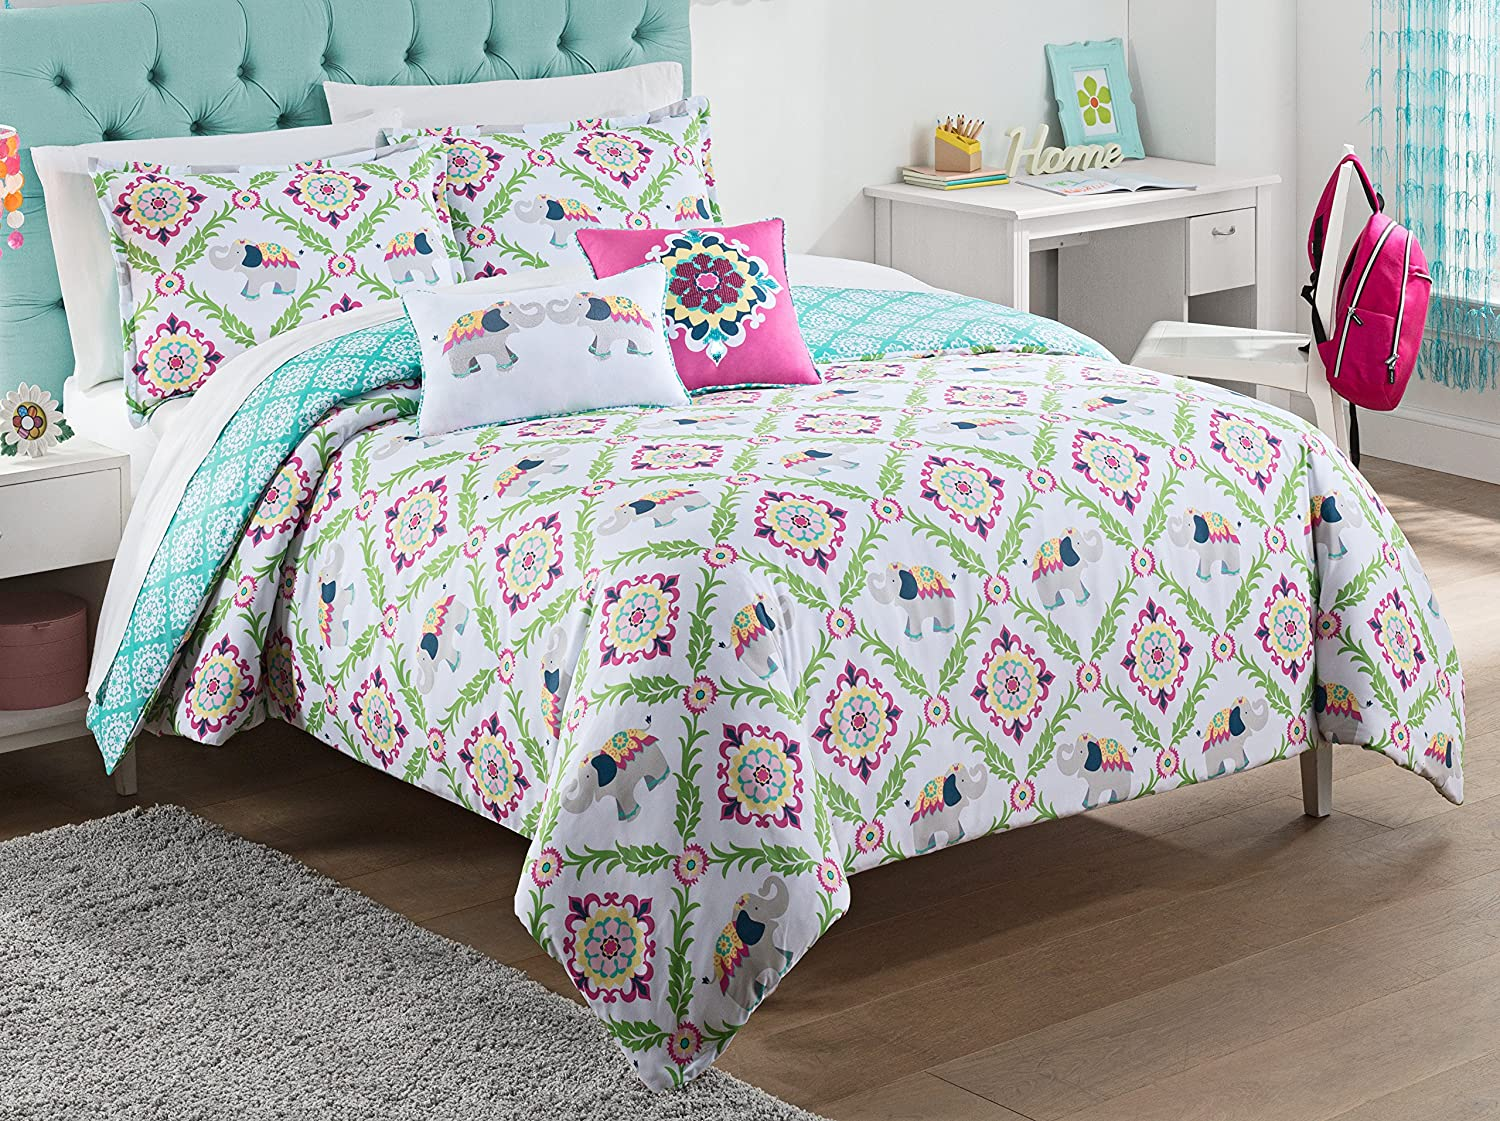 Waverly Kids 16437BEDDTWNMUL Bollywood 86-inch by 68-Inch Reversible Twin Comforter Collection, Multi